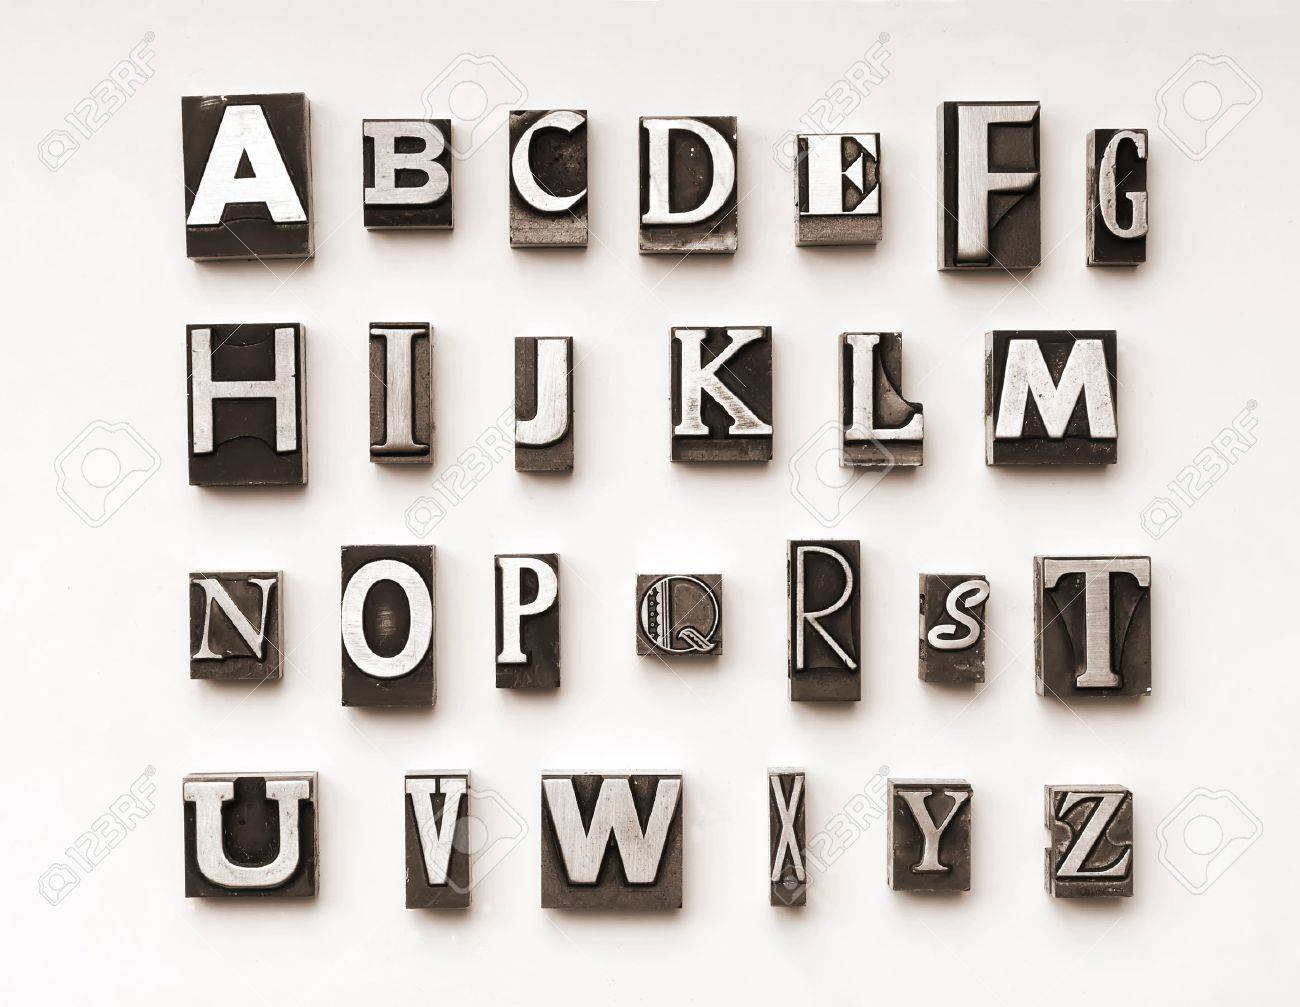 Alphabet photographed using a mix of vintage letterpress characters. Cross-proccessed for a vintage look. Stock Photo - 4065786